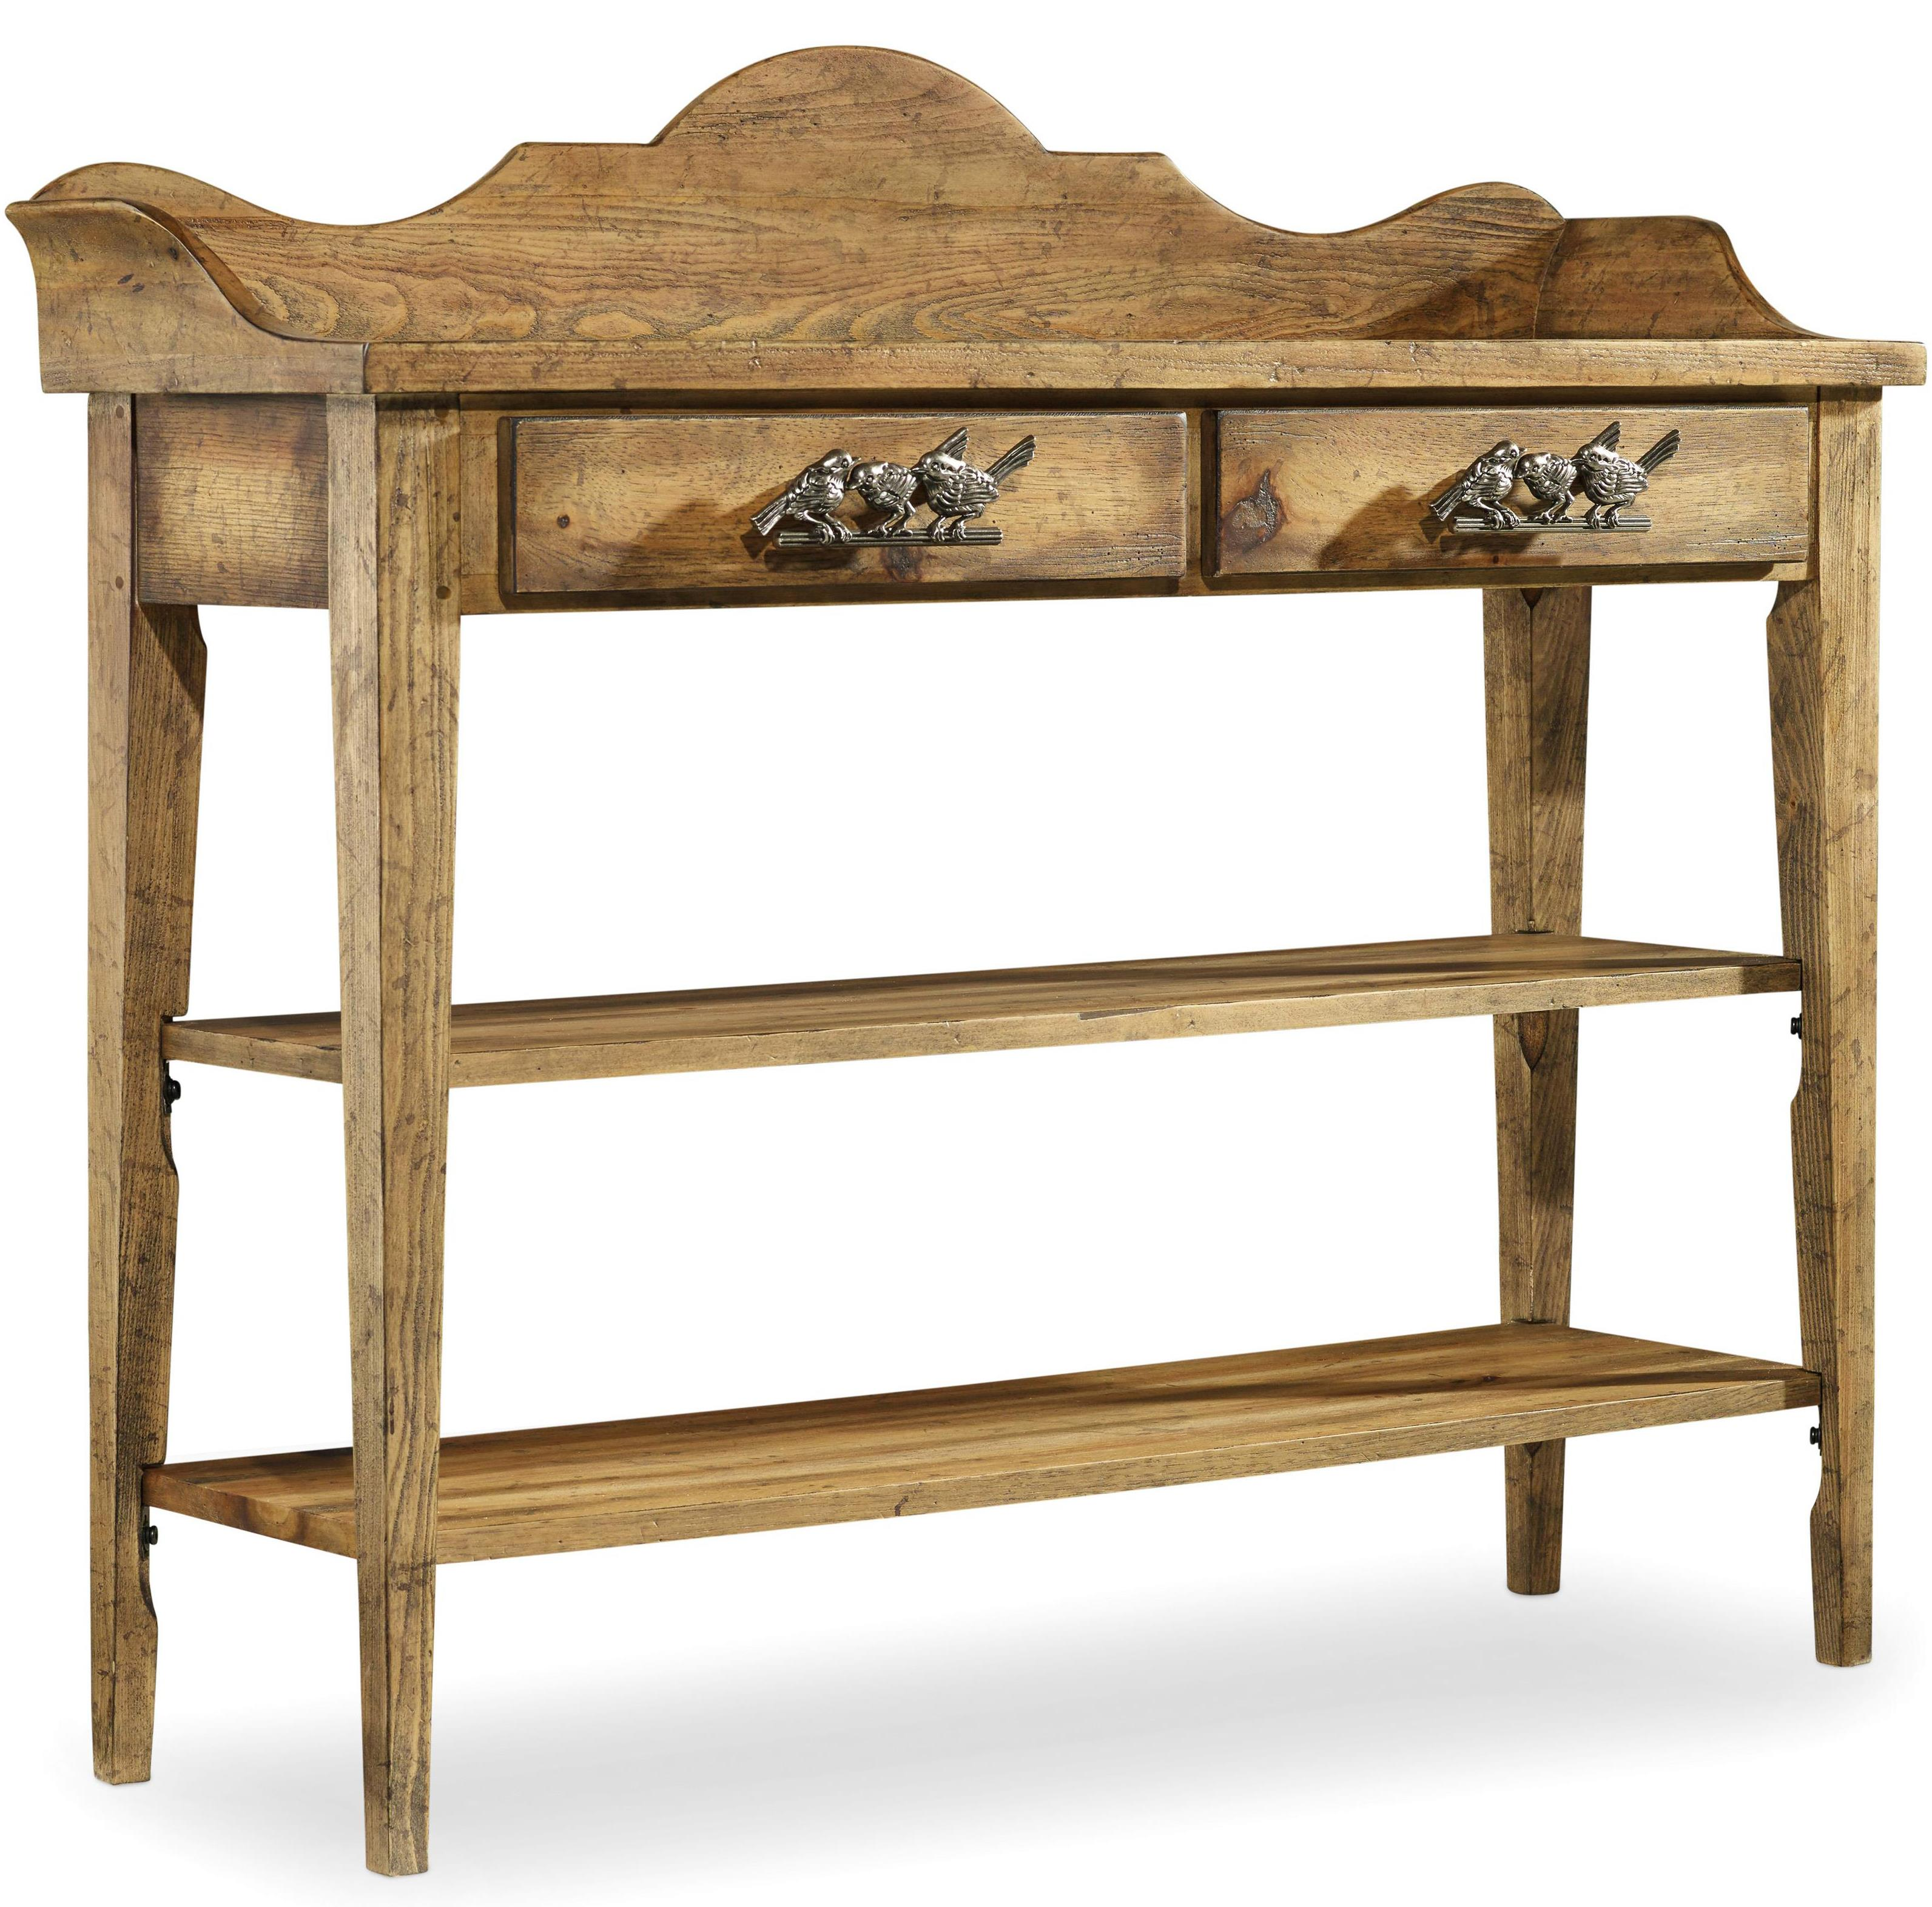 Hooker Furniture Sanctuary Thin Console - Item Number: 5407-85001